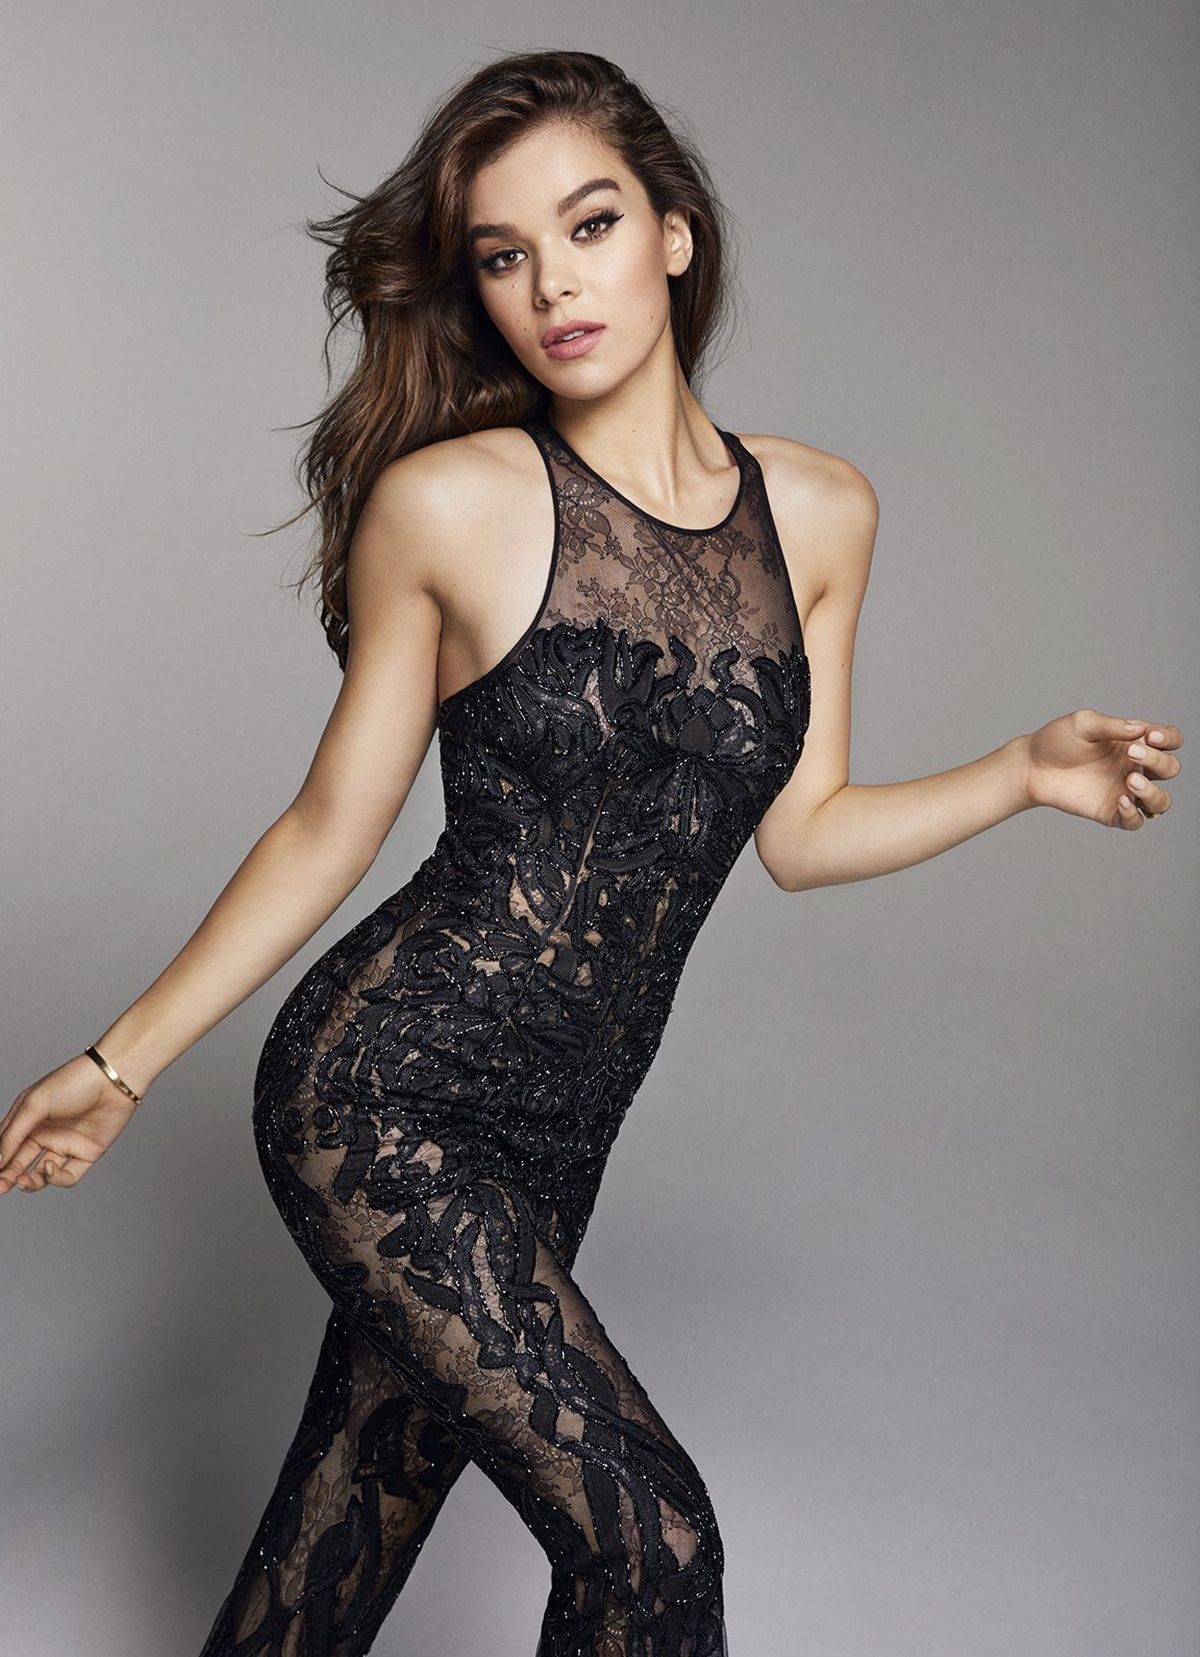 Celebrity Hailee Steinfeld nudes (55 foto and video), Topless, Cleavage, Boobs, bra 2019